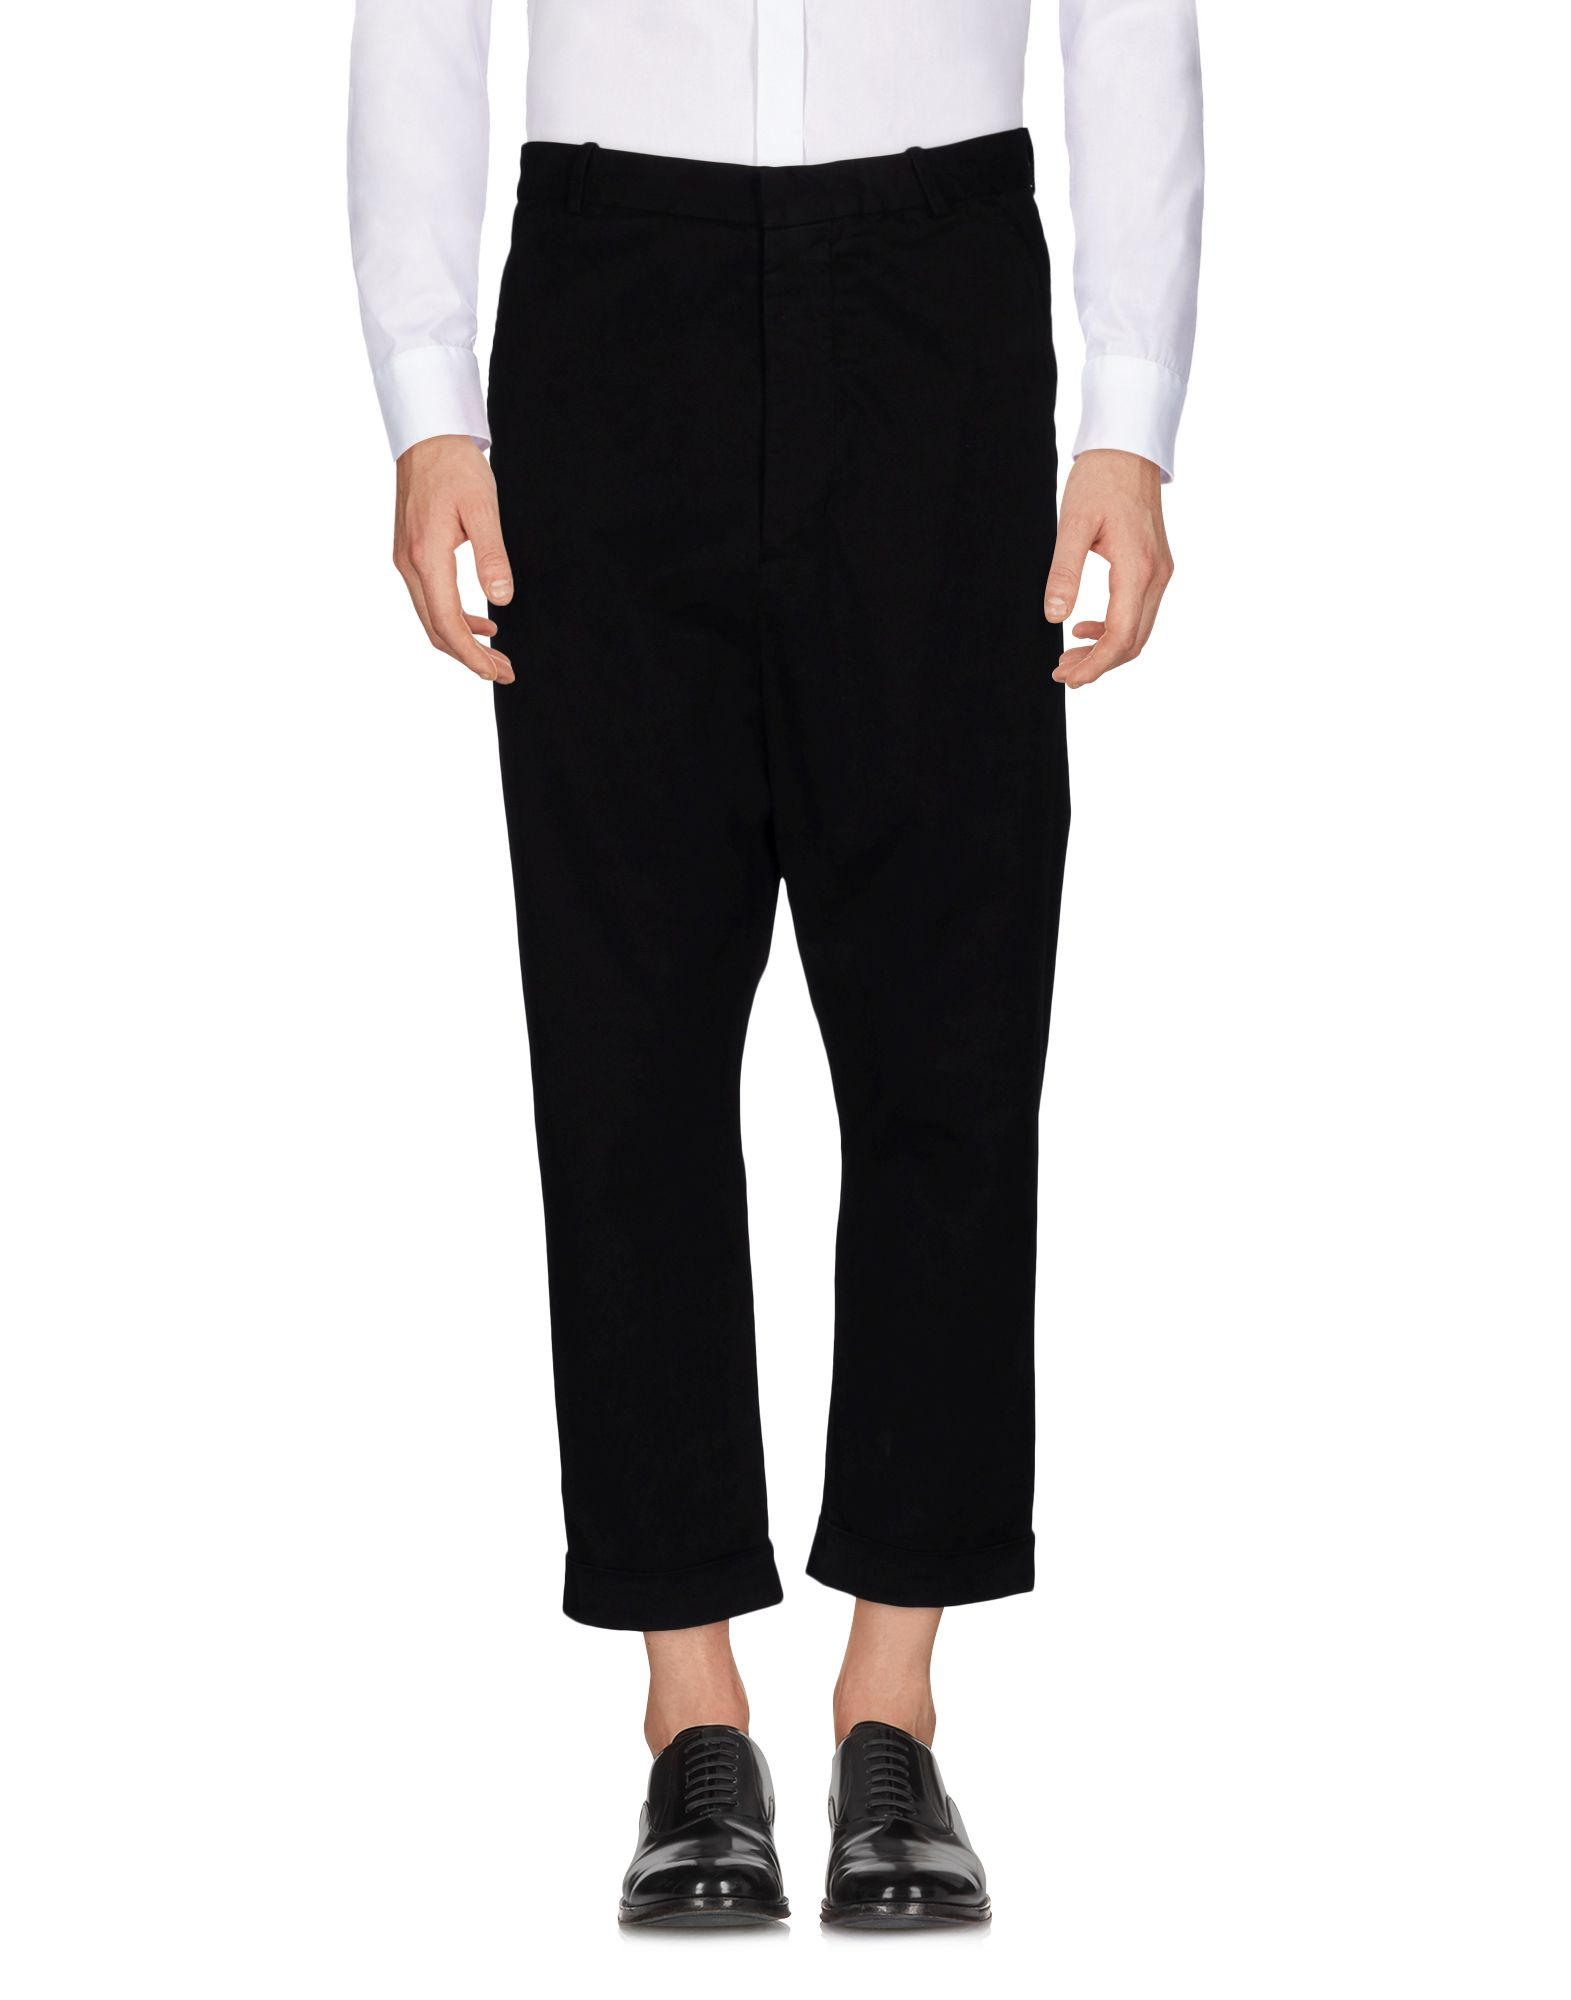 Pantalone Overcome Donna - Acquista online su